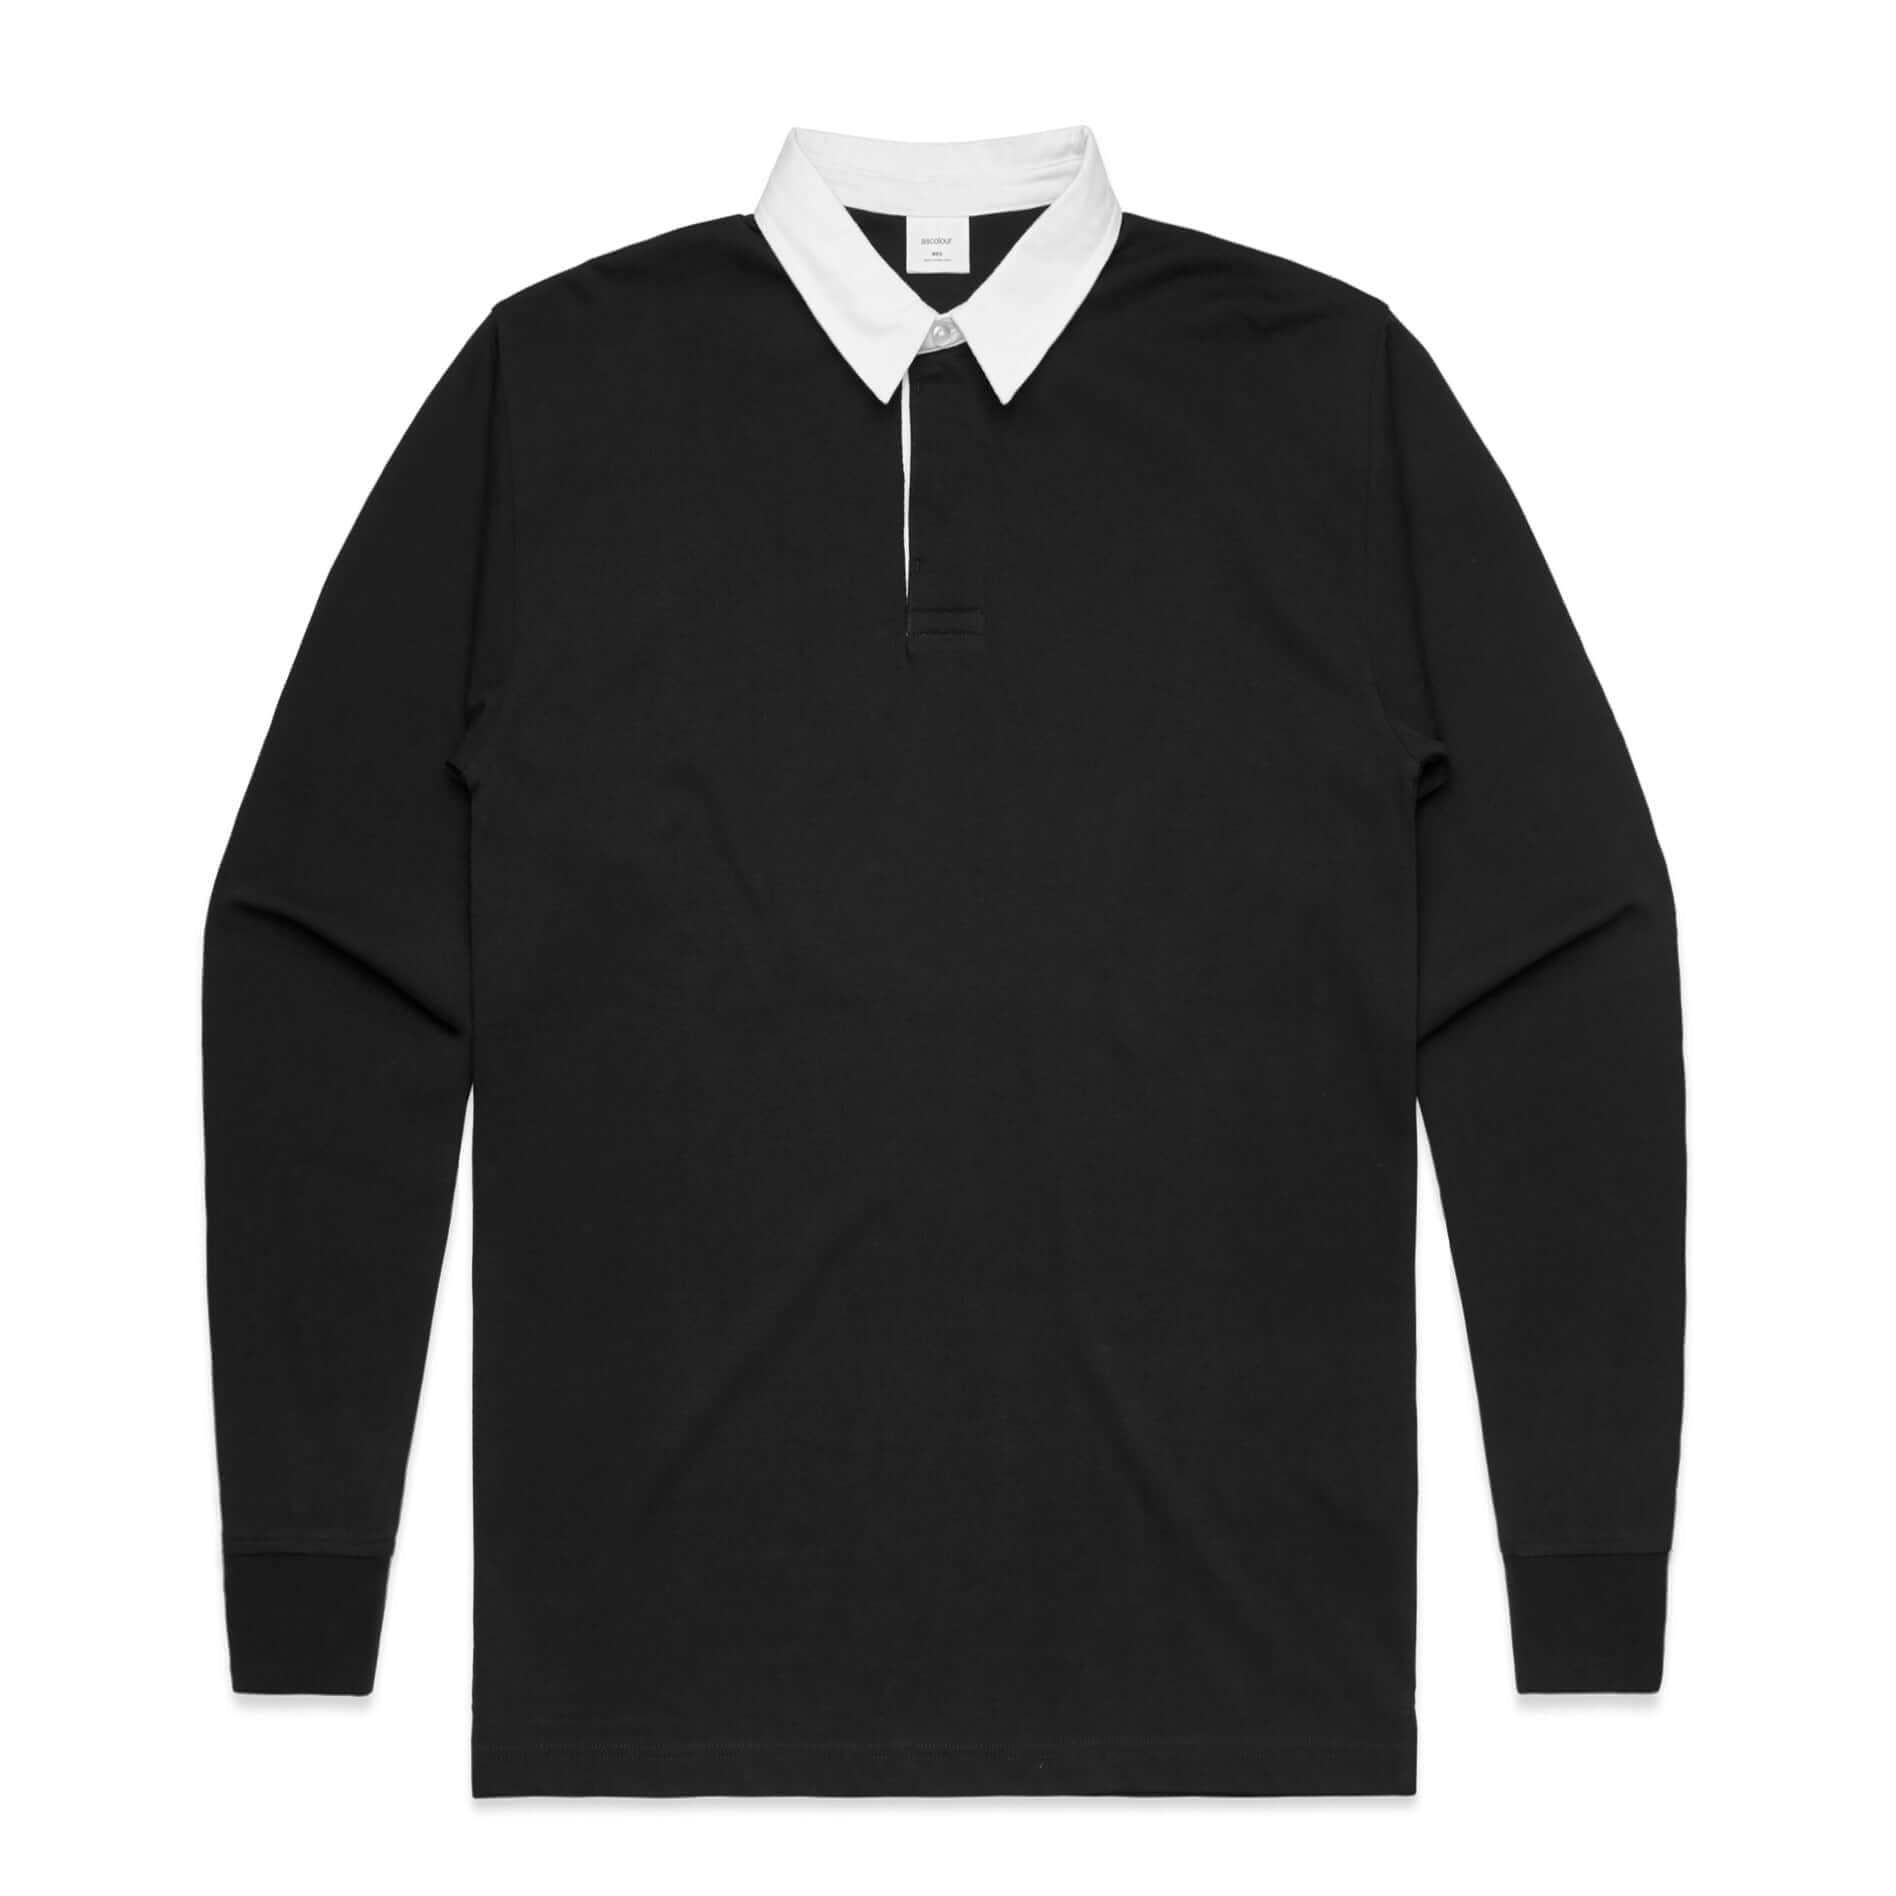 AS Colour RUGBY JERSEY - Black